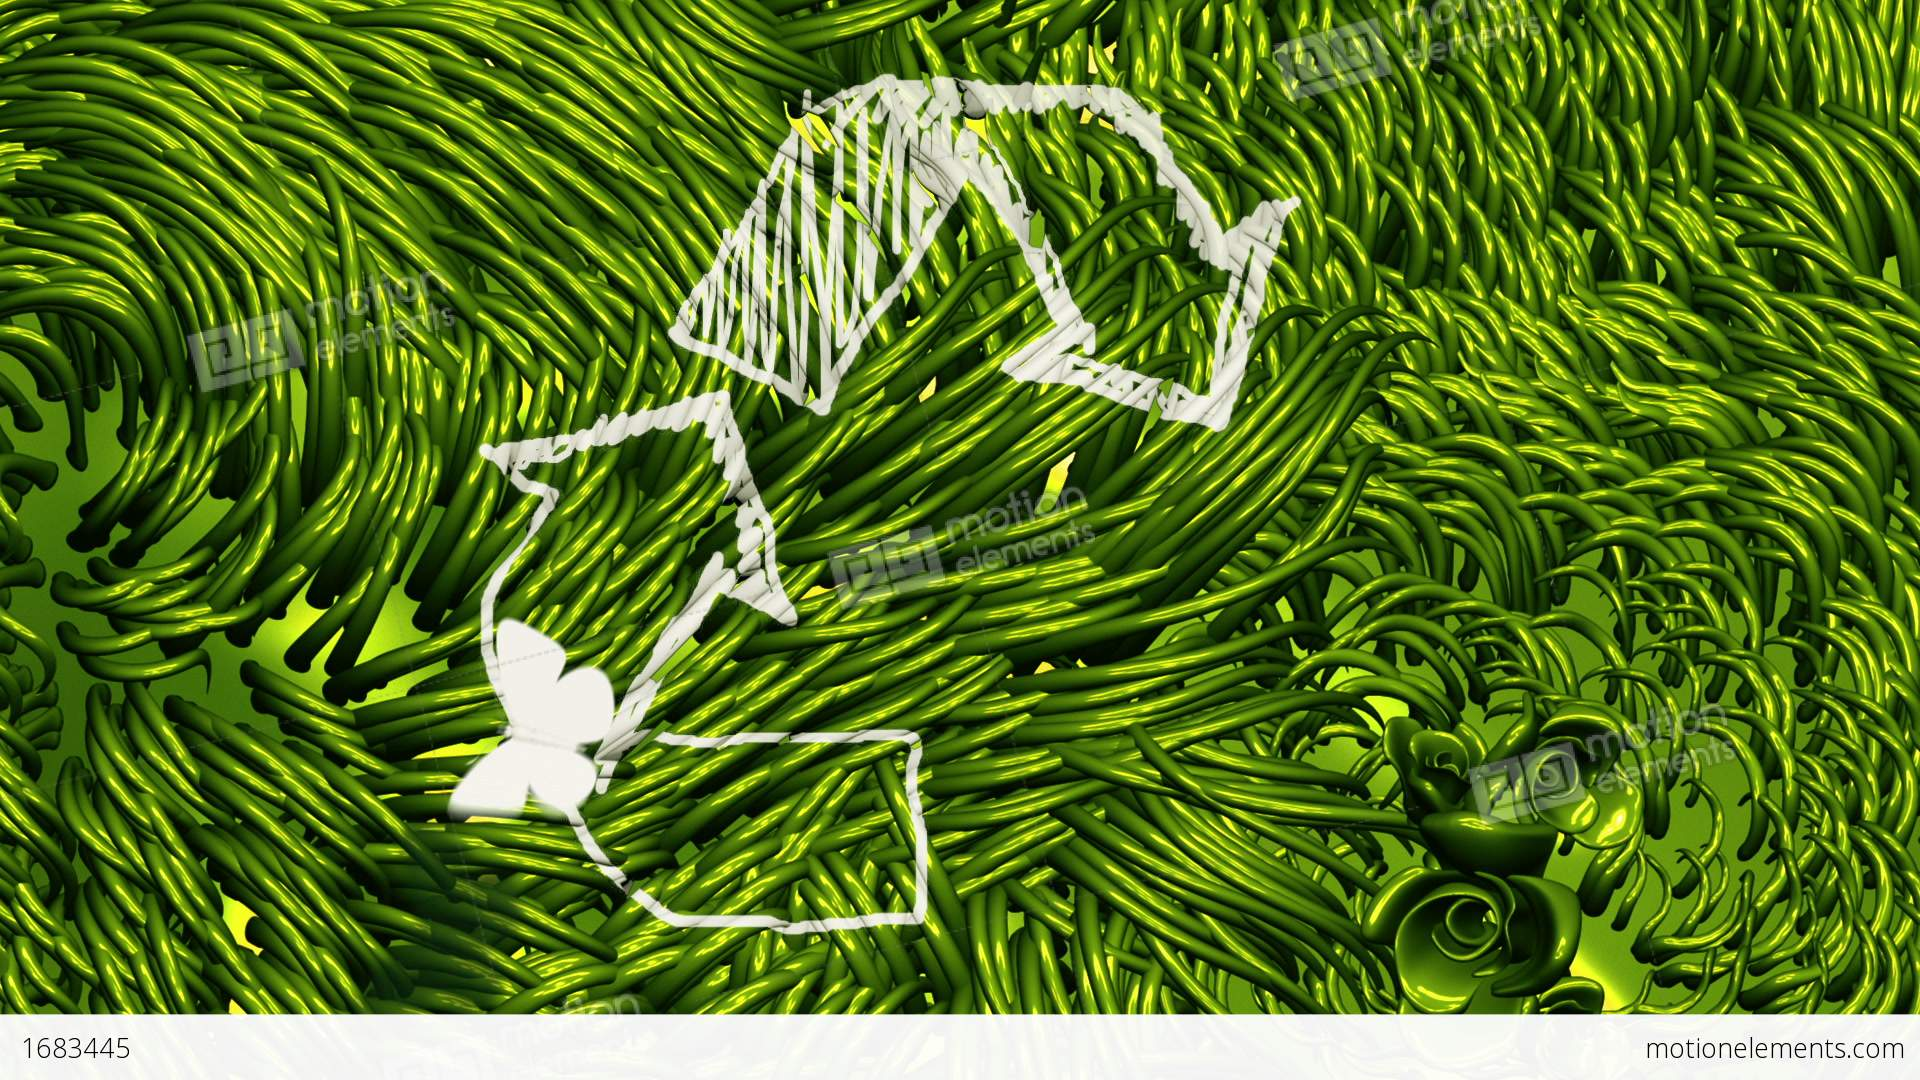 Recycle sign scribbling on green environment stock animation 1683445 recycle sign scribbling on green environment stock video footage buycottarizona Choice Image